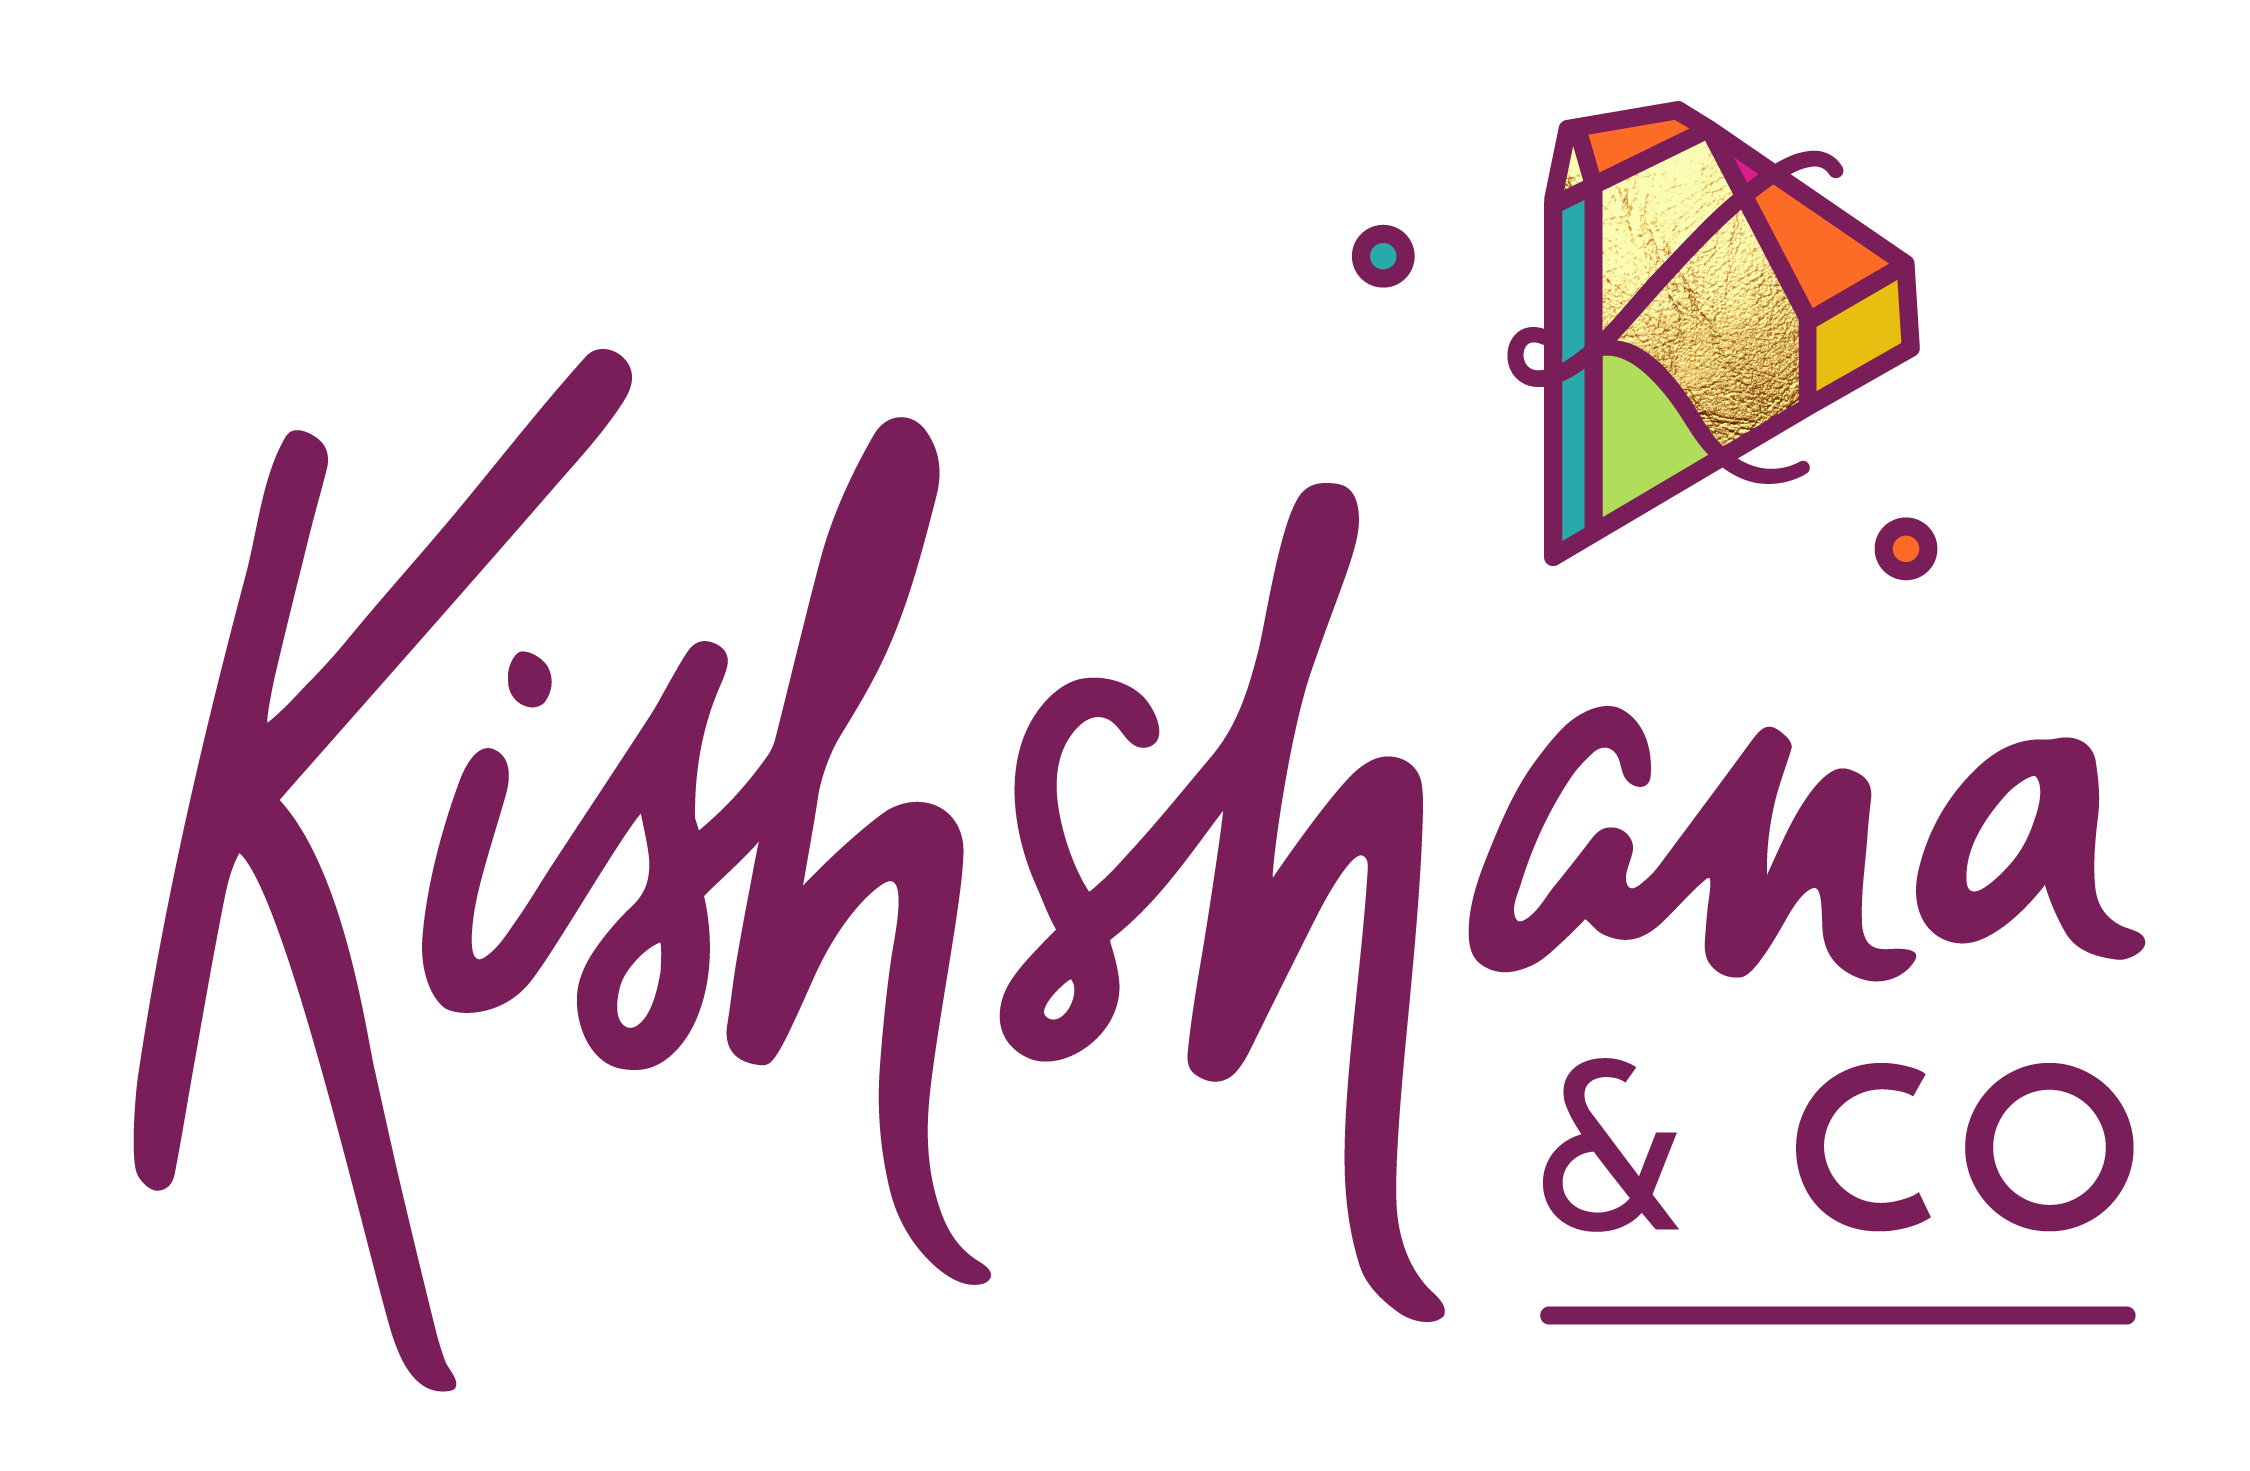 Kishshana Full Logo Menu